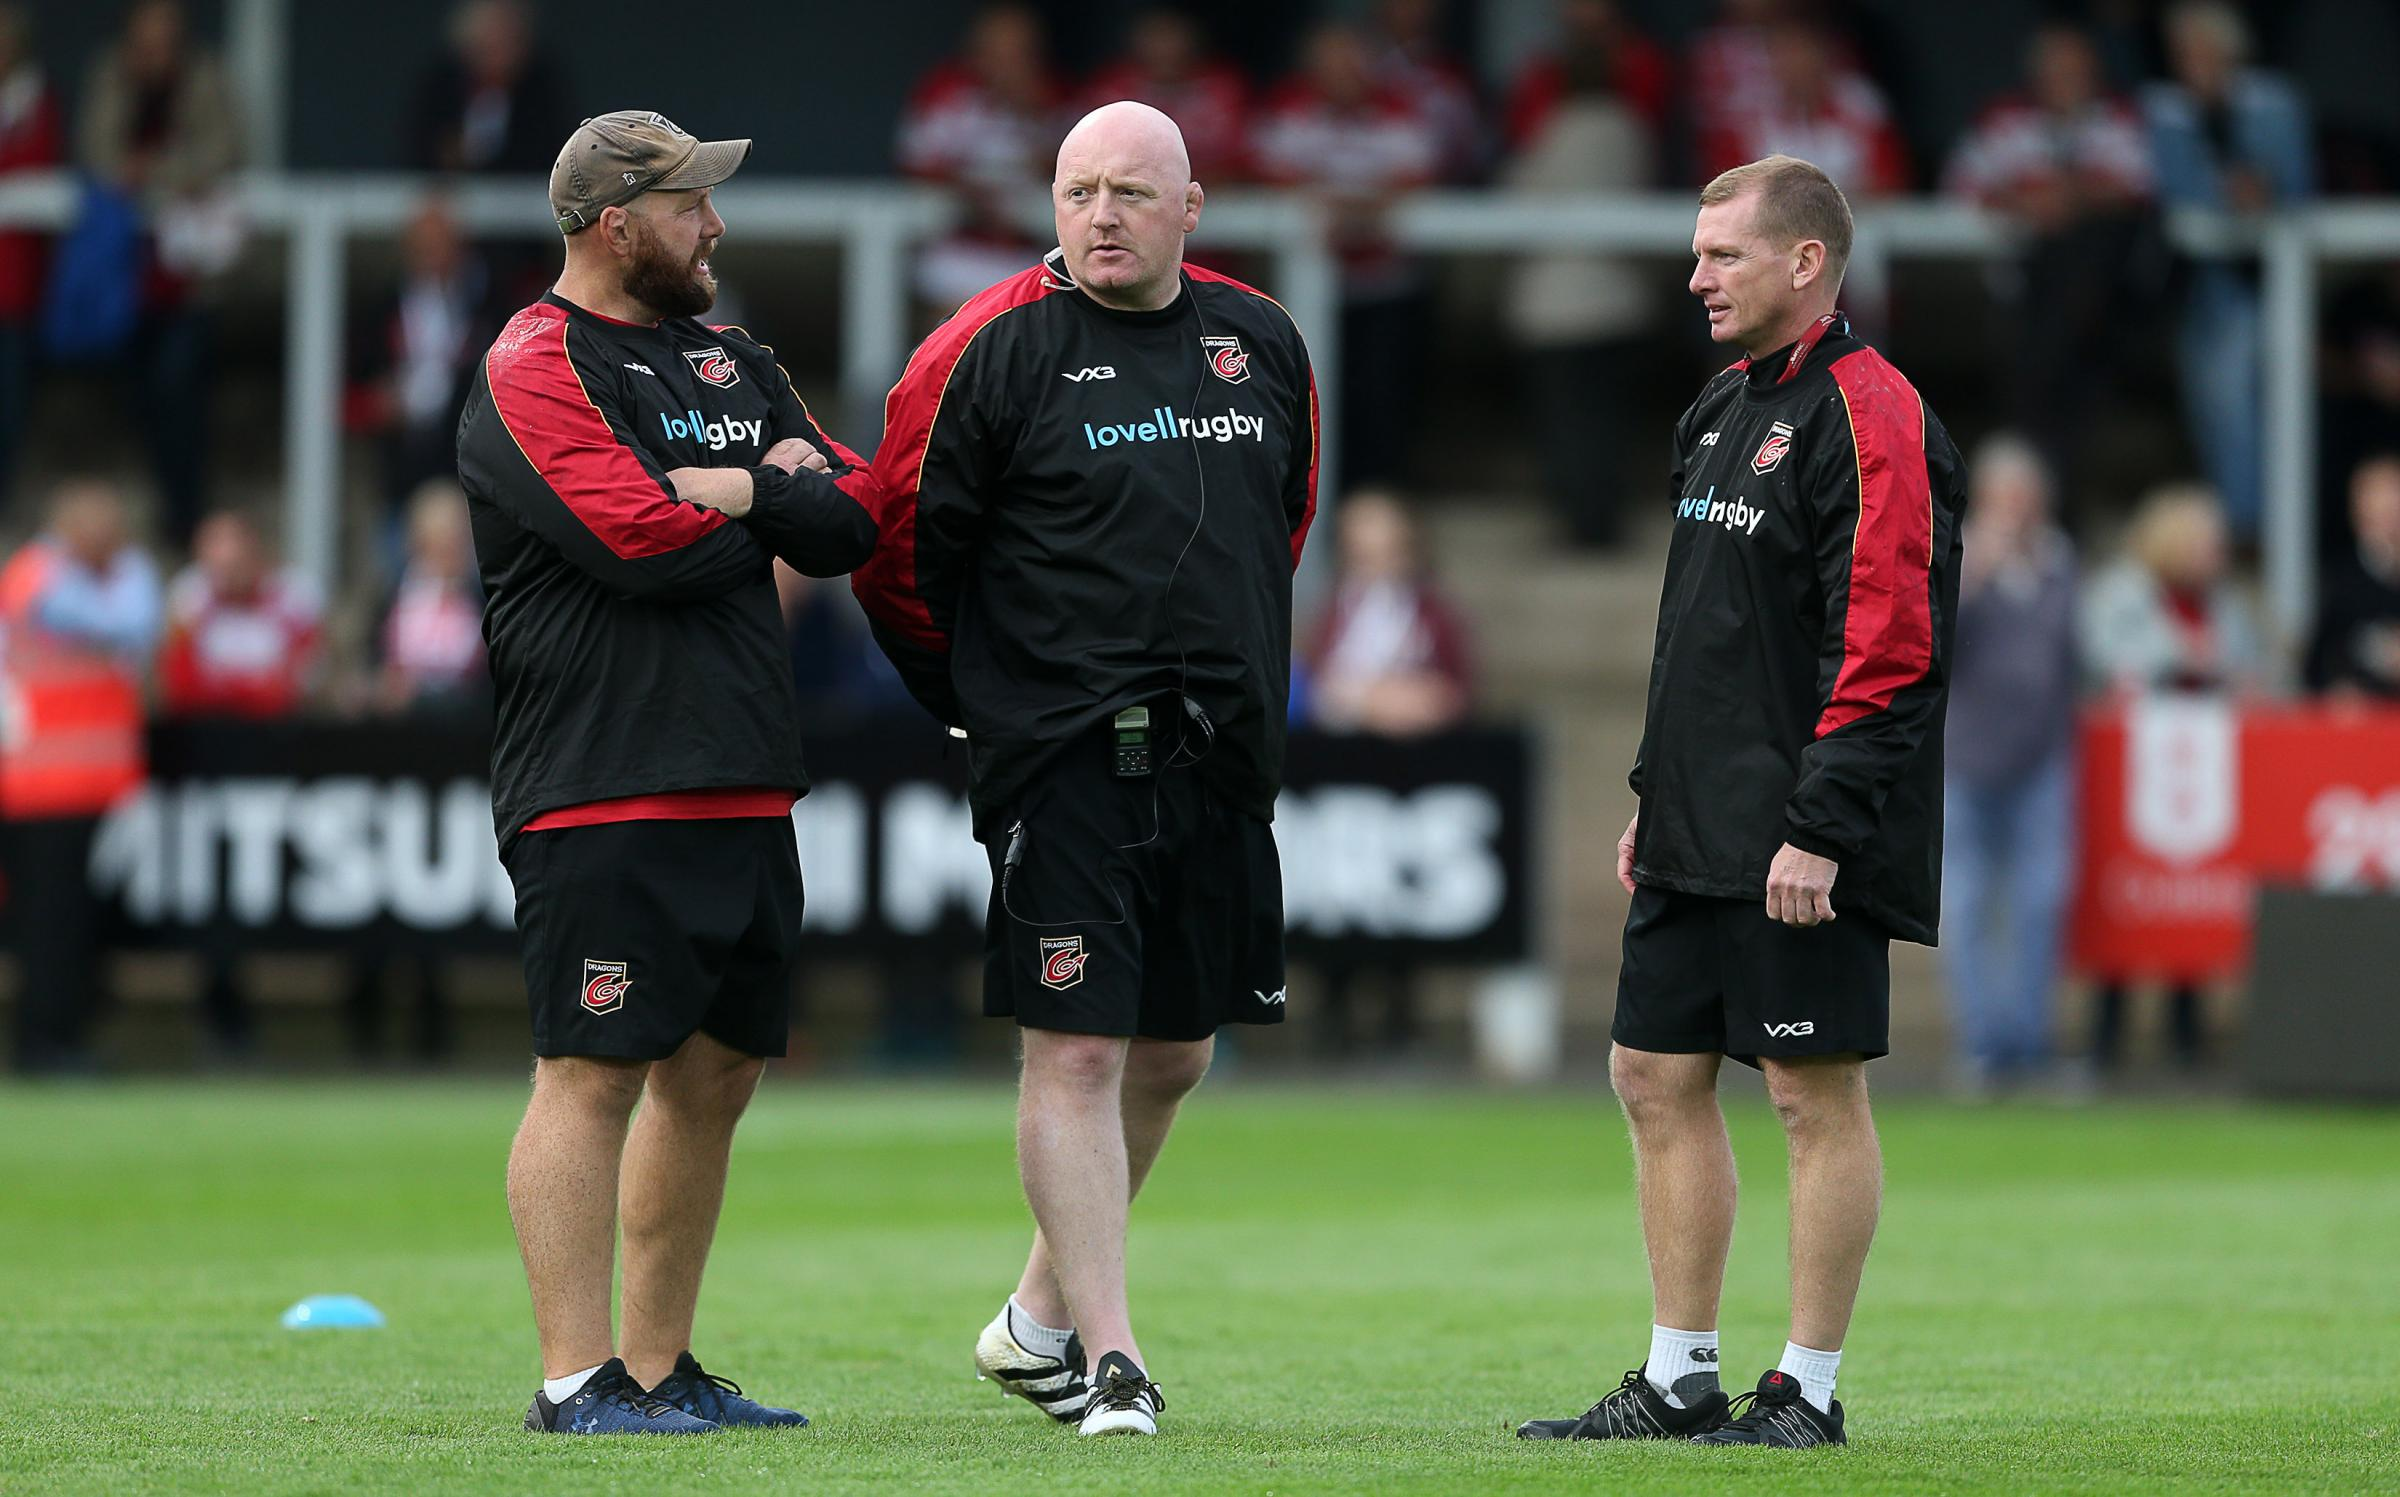 COACHES: The Dragons management team of Ceri Jones, Bernard Jackman and Barry Maddocks